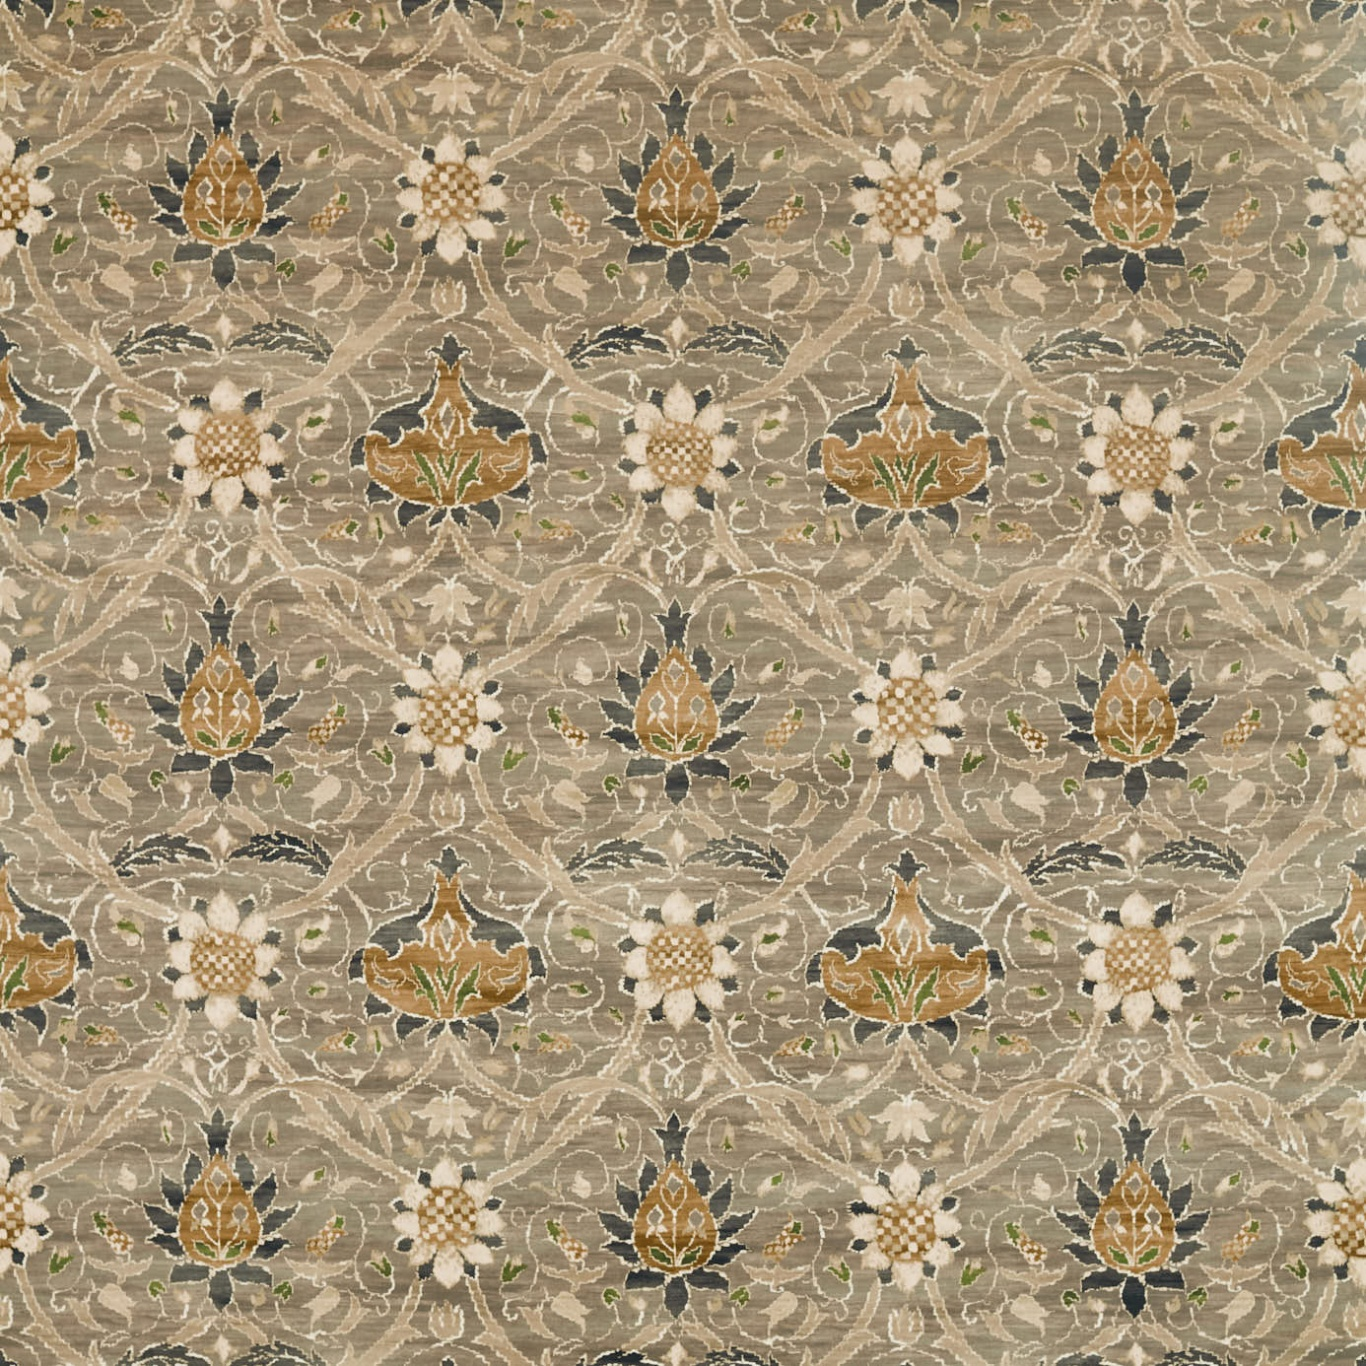 Image of Morris & Co Montreal Velvet Grey/Charcoal Fabric 226390